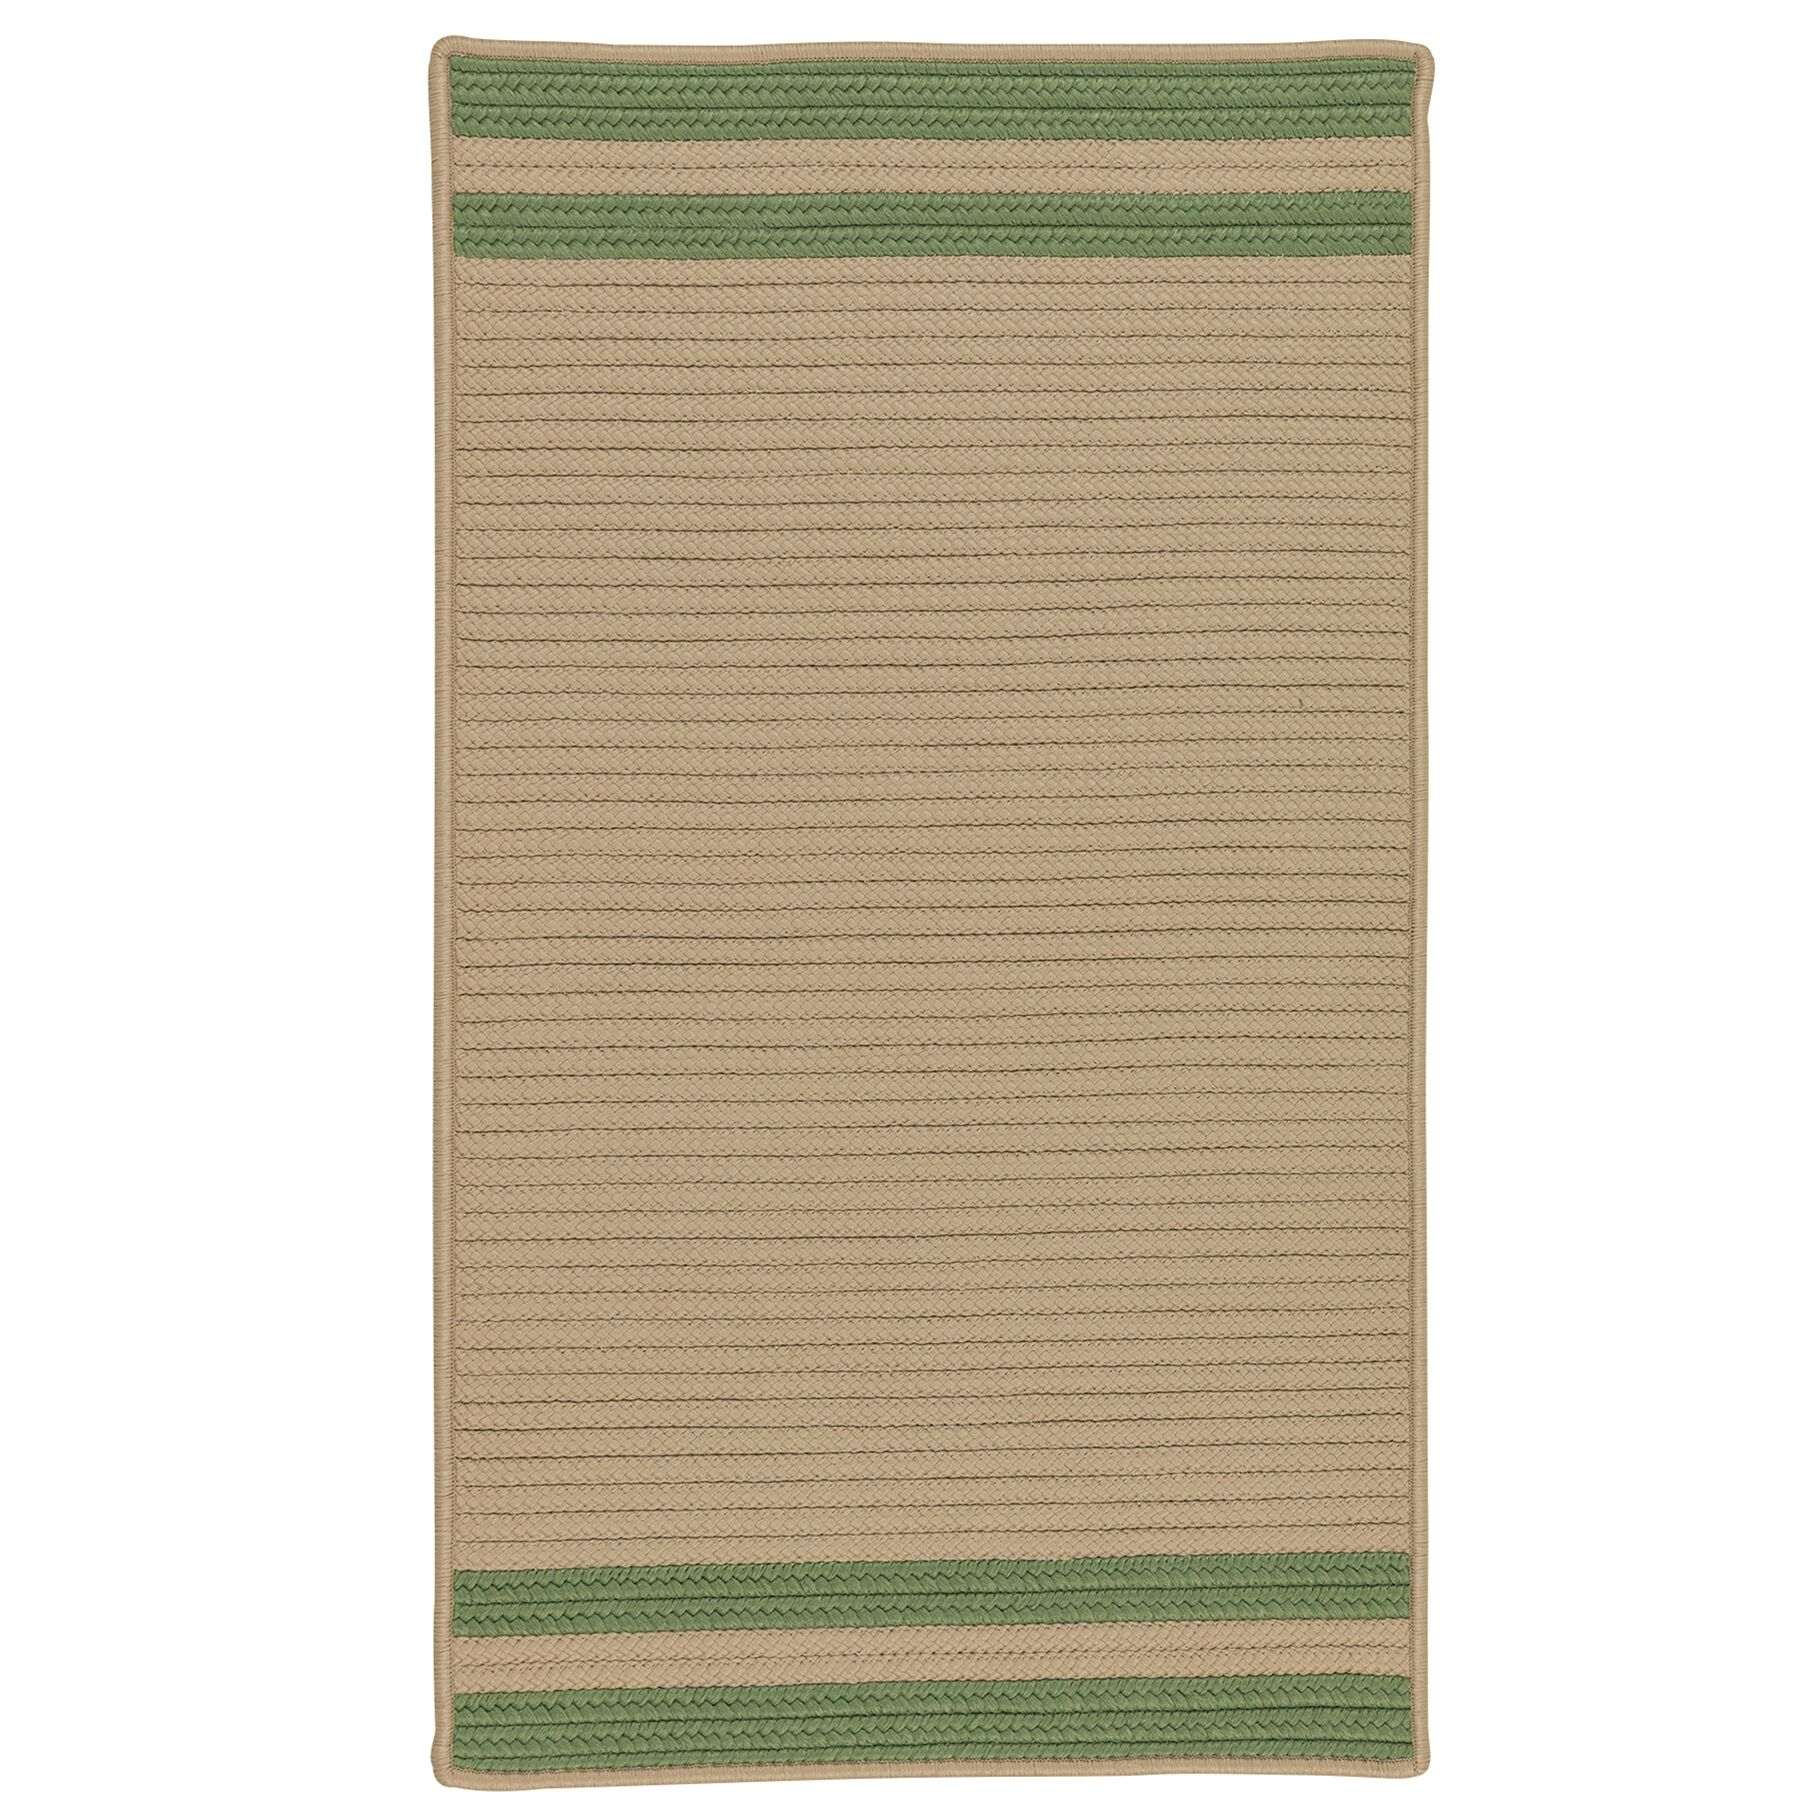 Kellie Stripe Hand-Braided Moss Green/Brown Indoor/Outdoor Area Rug Rug Size: Rectangle 5' x 8'